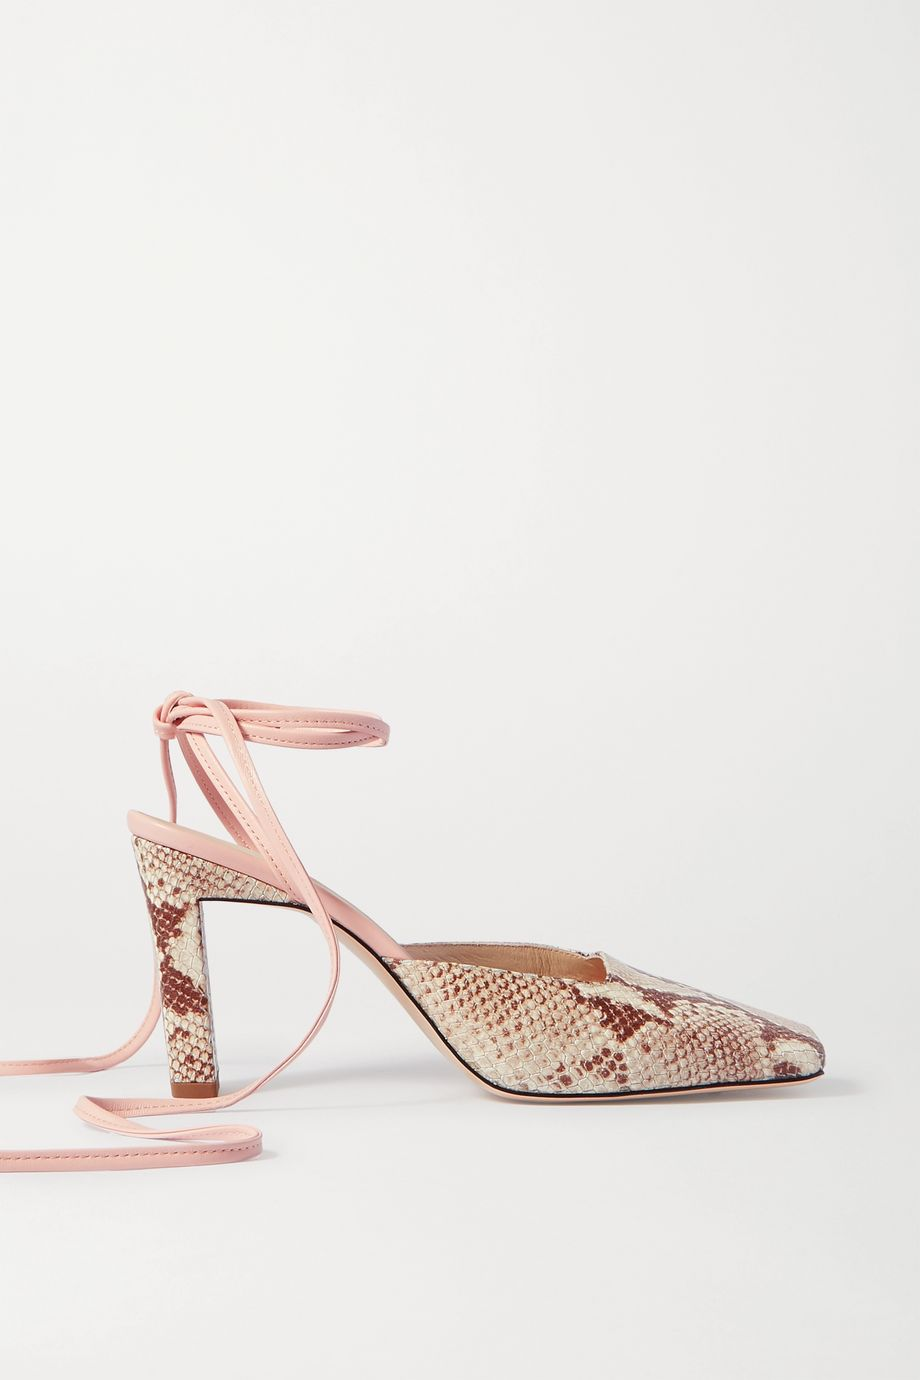 Wandler Elisa snake-effect leather pumps